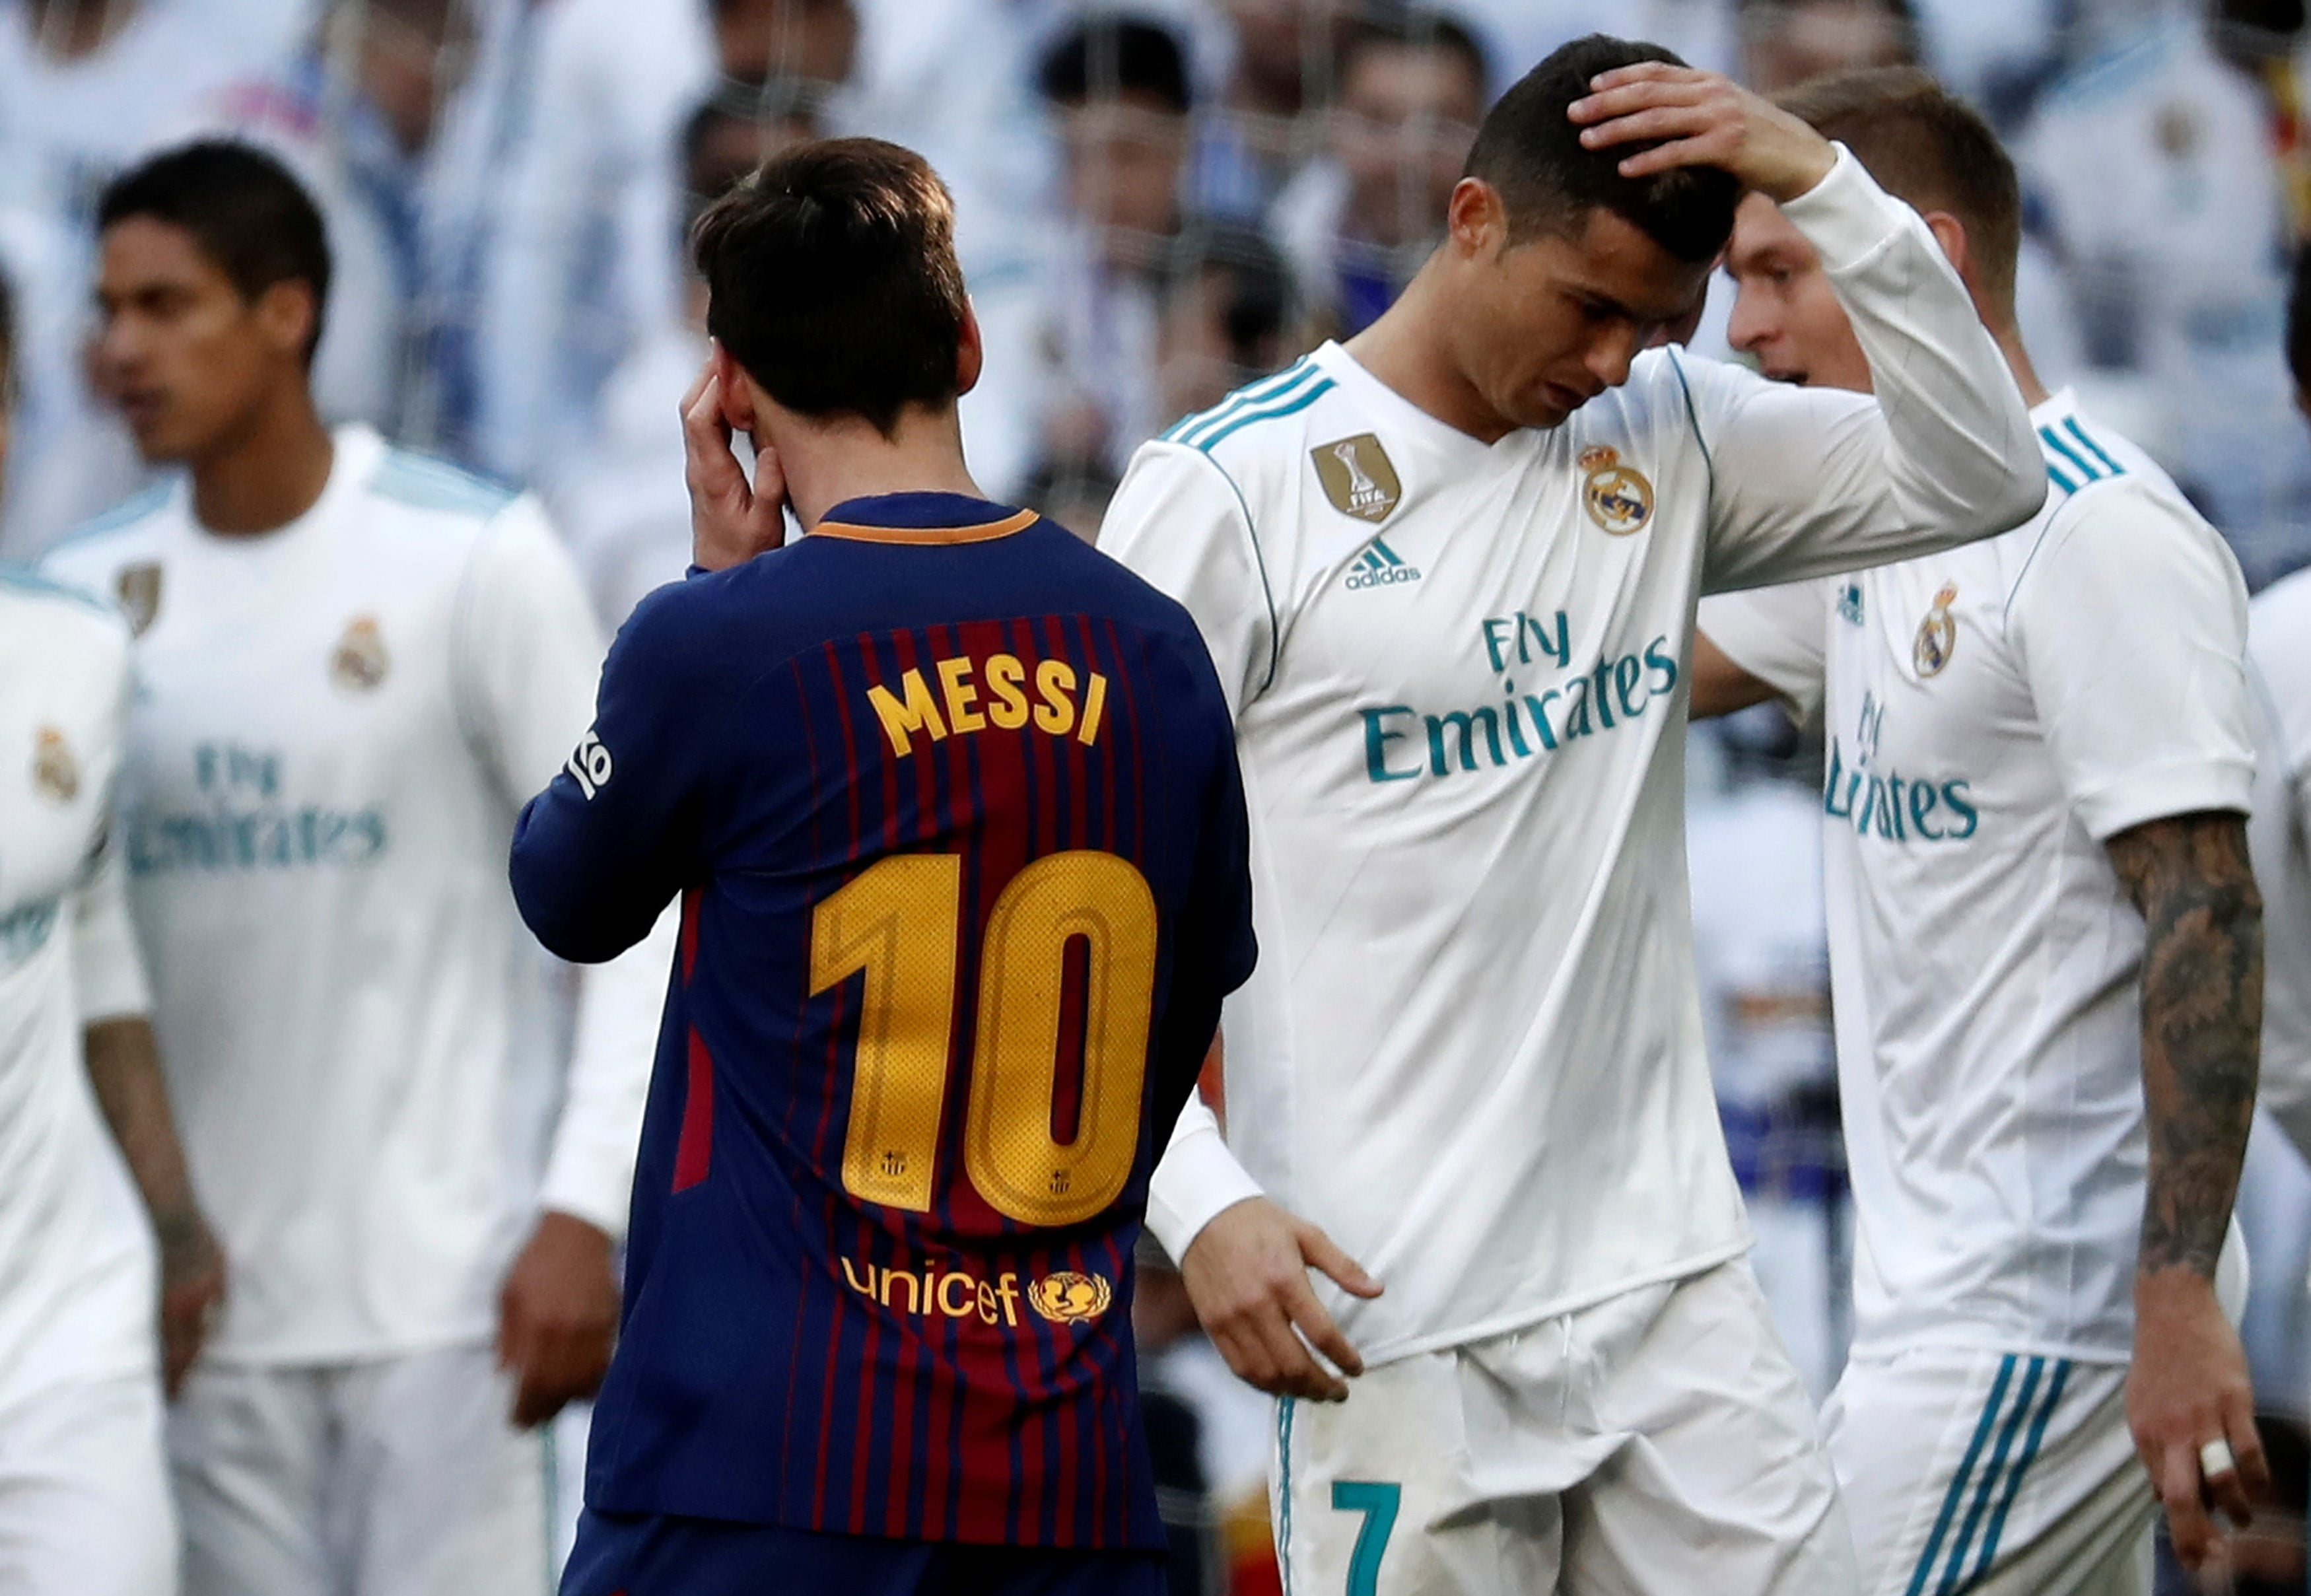 MADRID, SPAIN - DECEMBER 23: Cristiano Ronaldo (R) of Real Madrid and Lionel Messi (10) of Barcelona are seen during the La Liga match between Real Madrid and Barcelona at Santiago Bernabeu Stadium in Madrid, Spain on December 23, 2017. Burak Akbulut / Anadolu Agency FOT. ABACAPRESS.COM / NEWSPIX.PL POLAND ONLY !!! --- Newspix.pl *** Local Caption *** www.newspix.pl mail us: info@newspix.pl call us: 0048 022 23 22 222 --- Polish Picture Agency by Ringier Axel Springer Poland